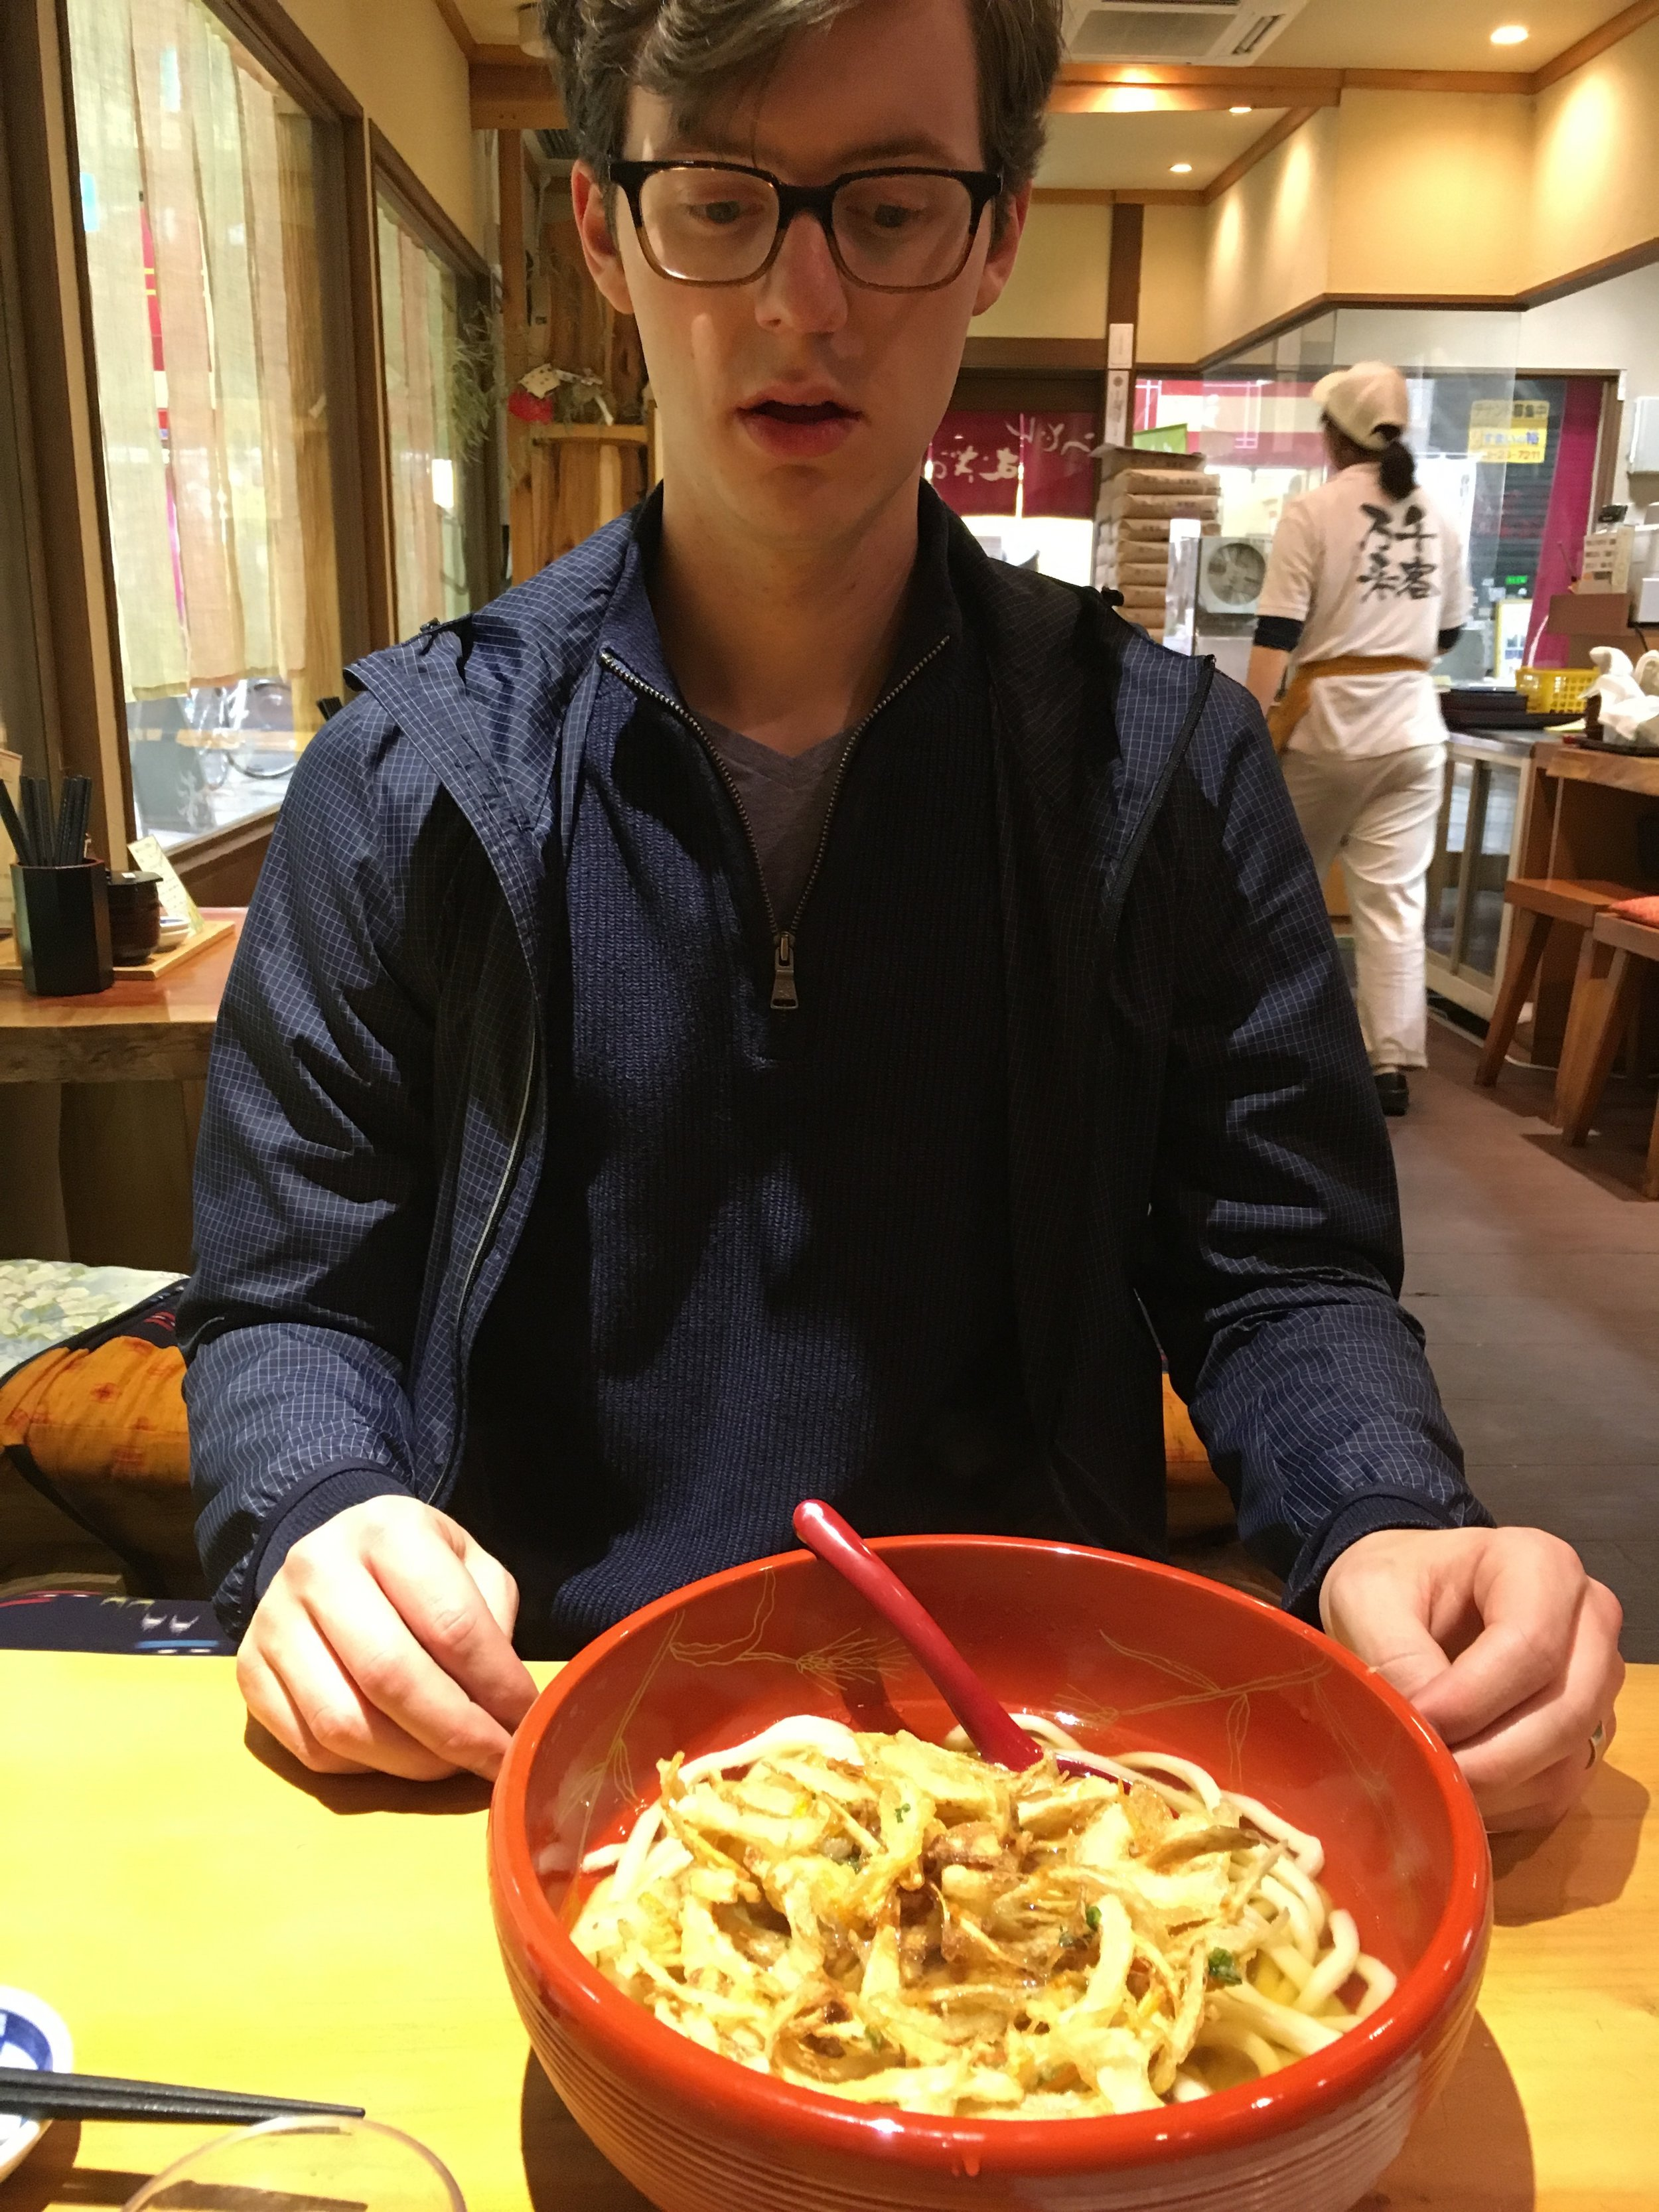 Michael's expression was priceless. SO much udon!